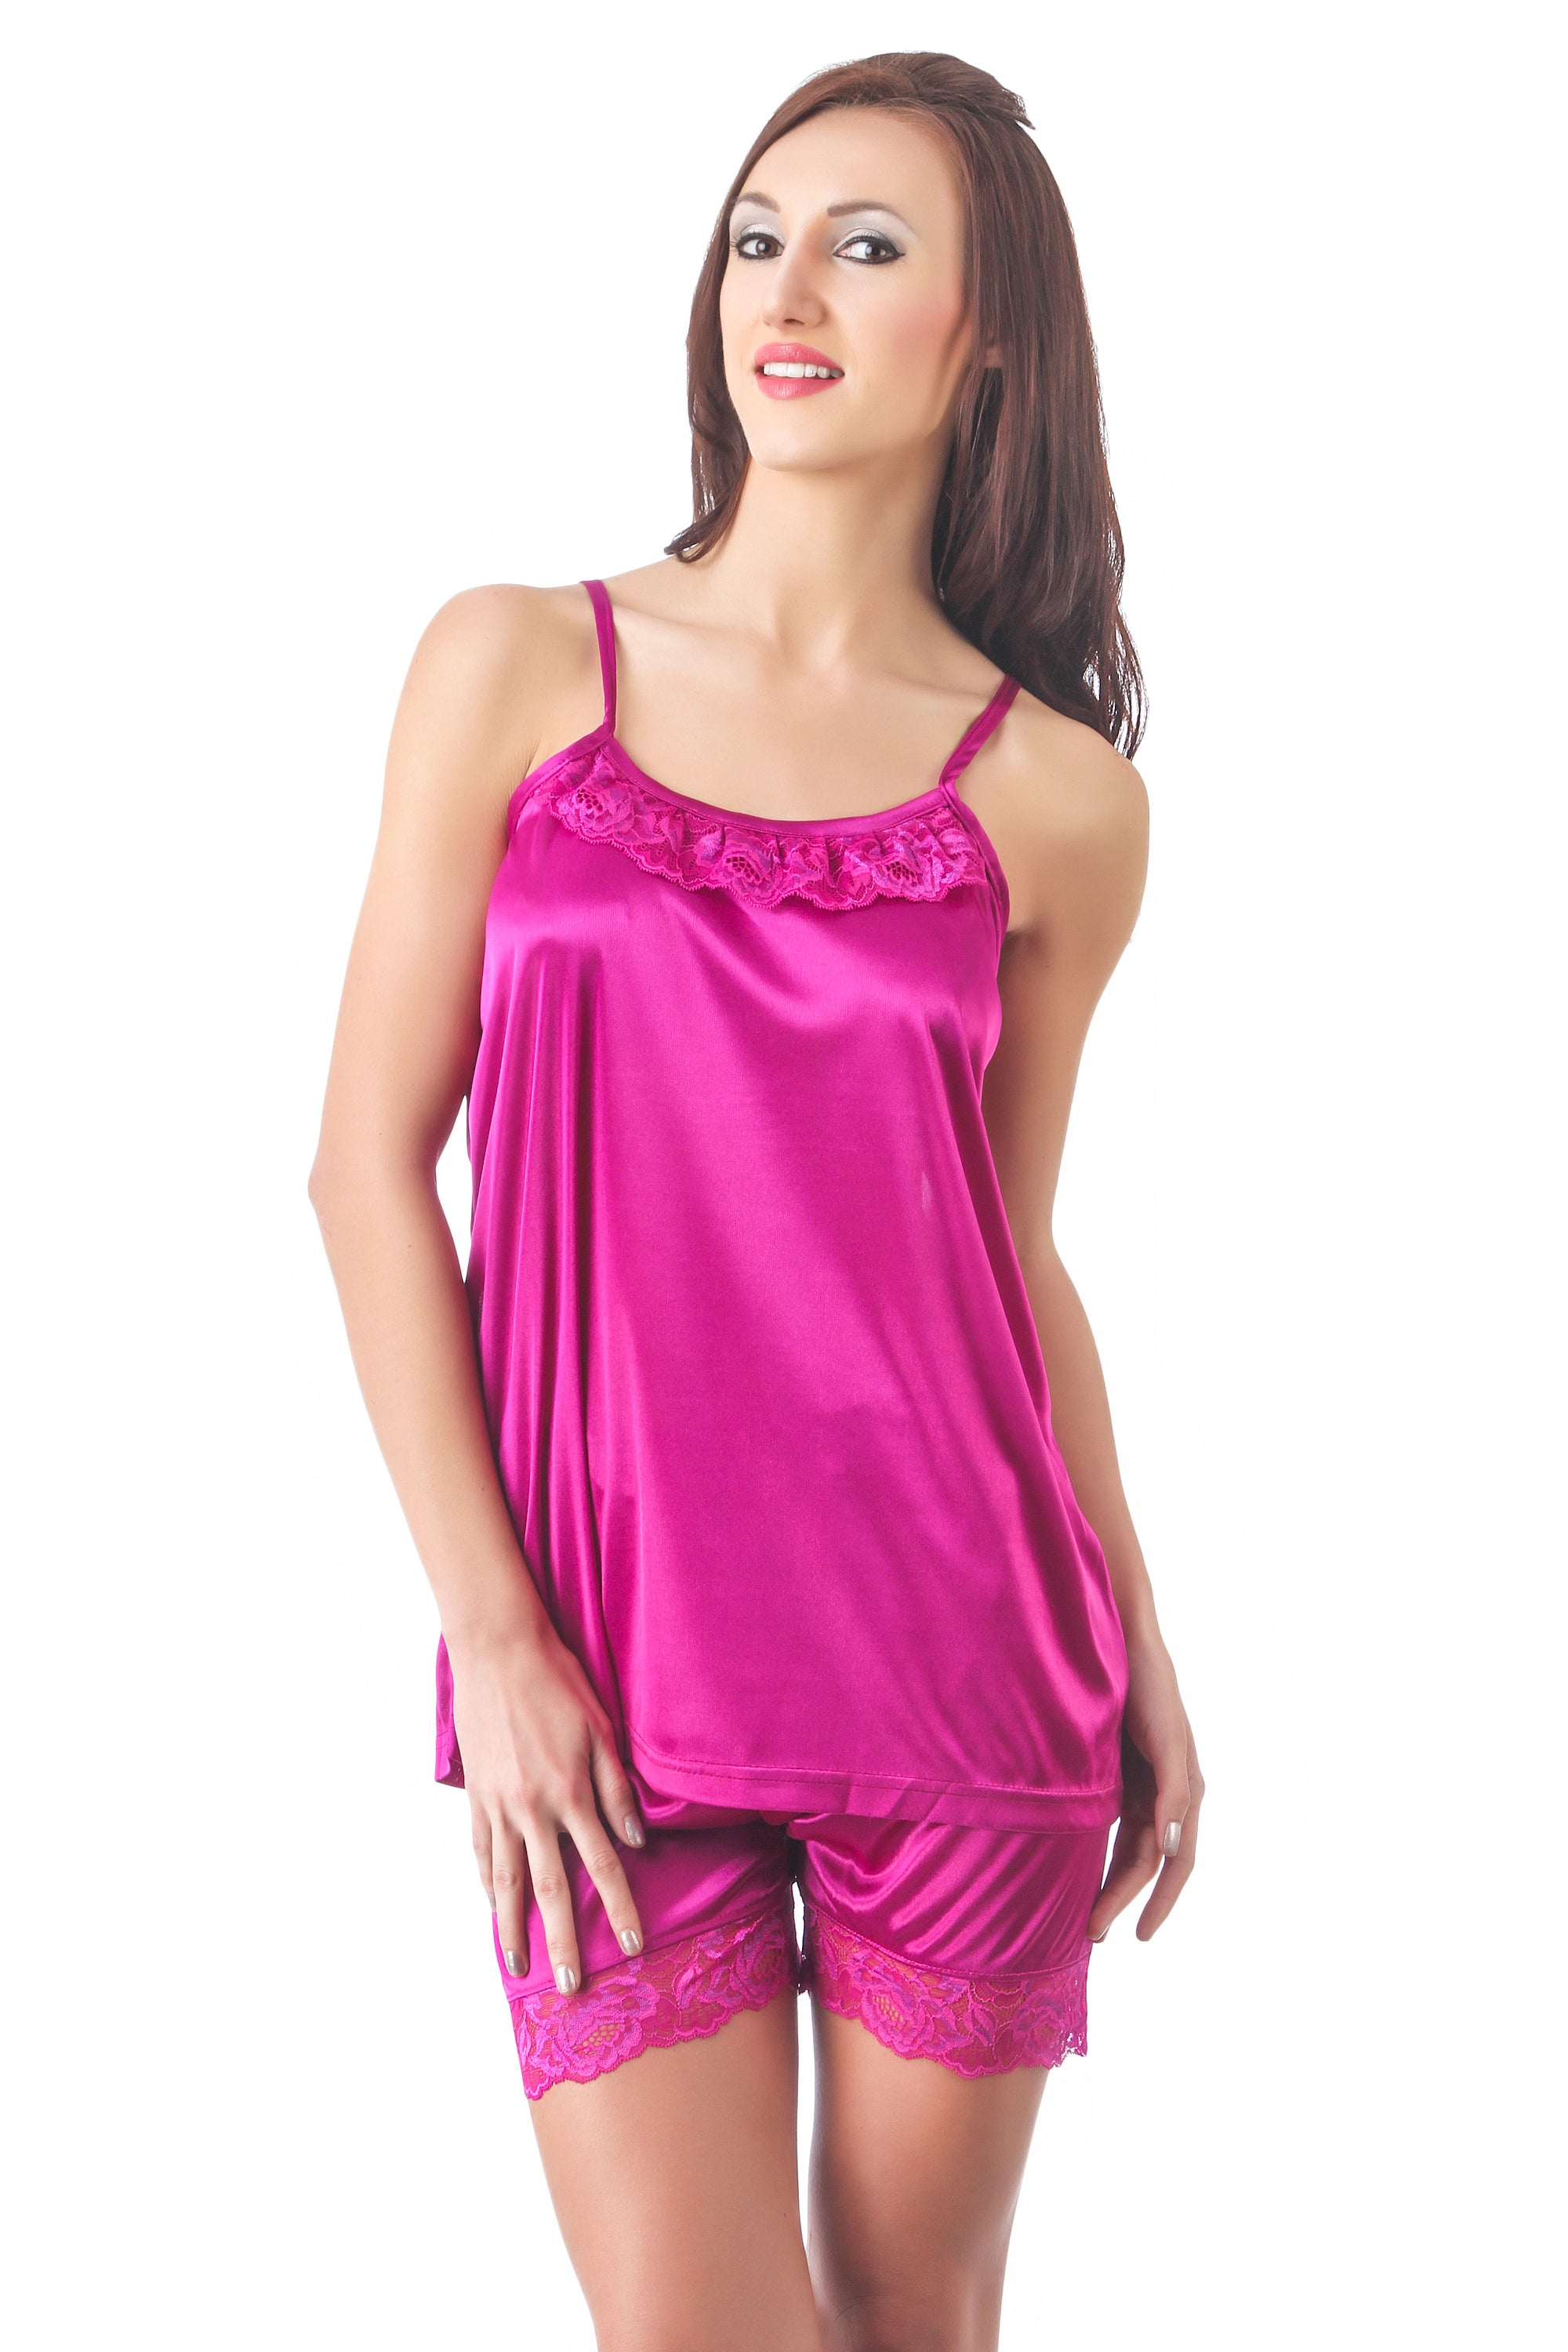 Fasense soft & smooth satin nightwear top and shorts night suit for girls DP087 - fasensestore